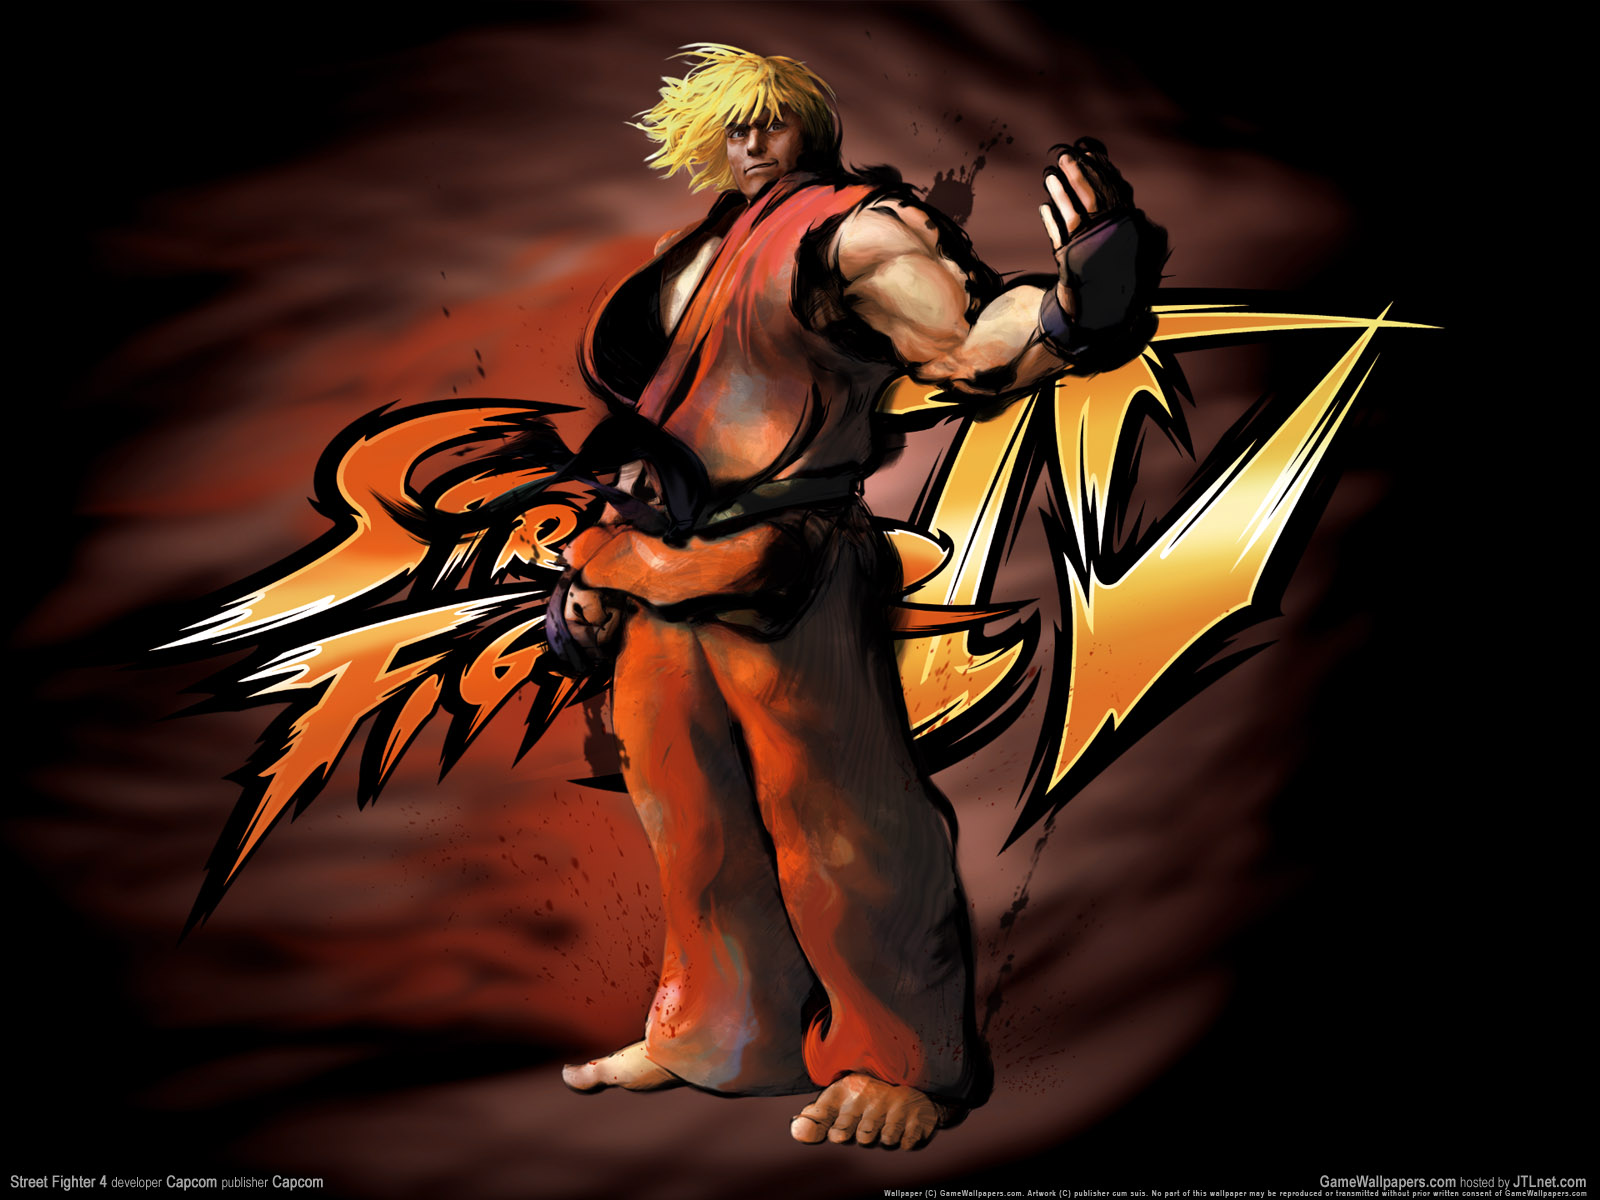 Street Fighter 4   1 256.82 Kb